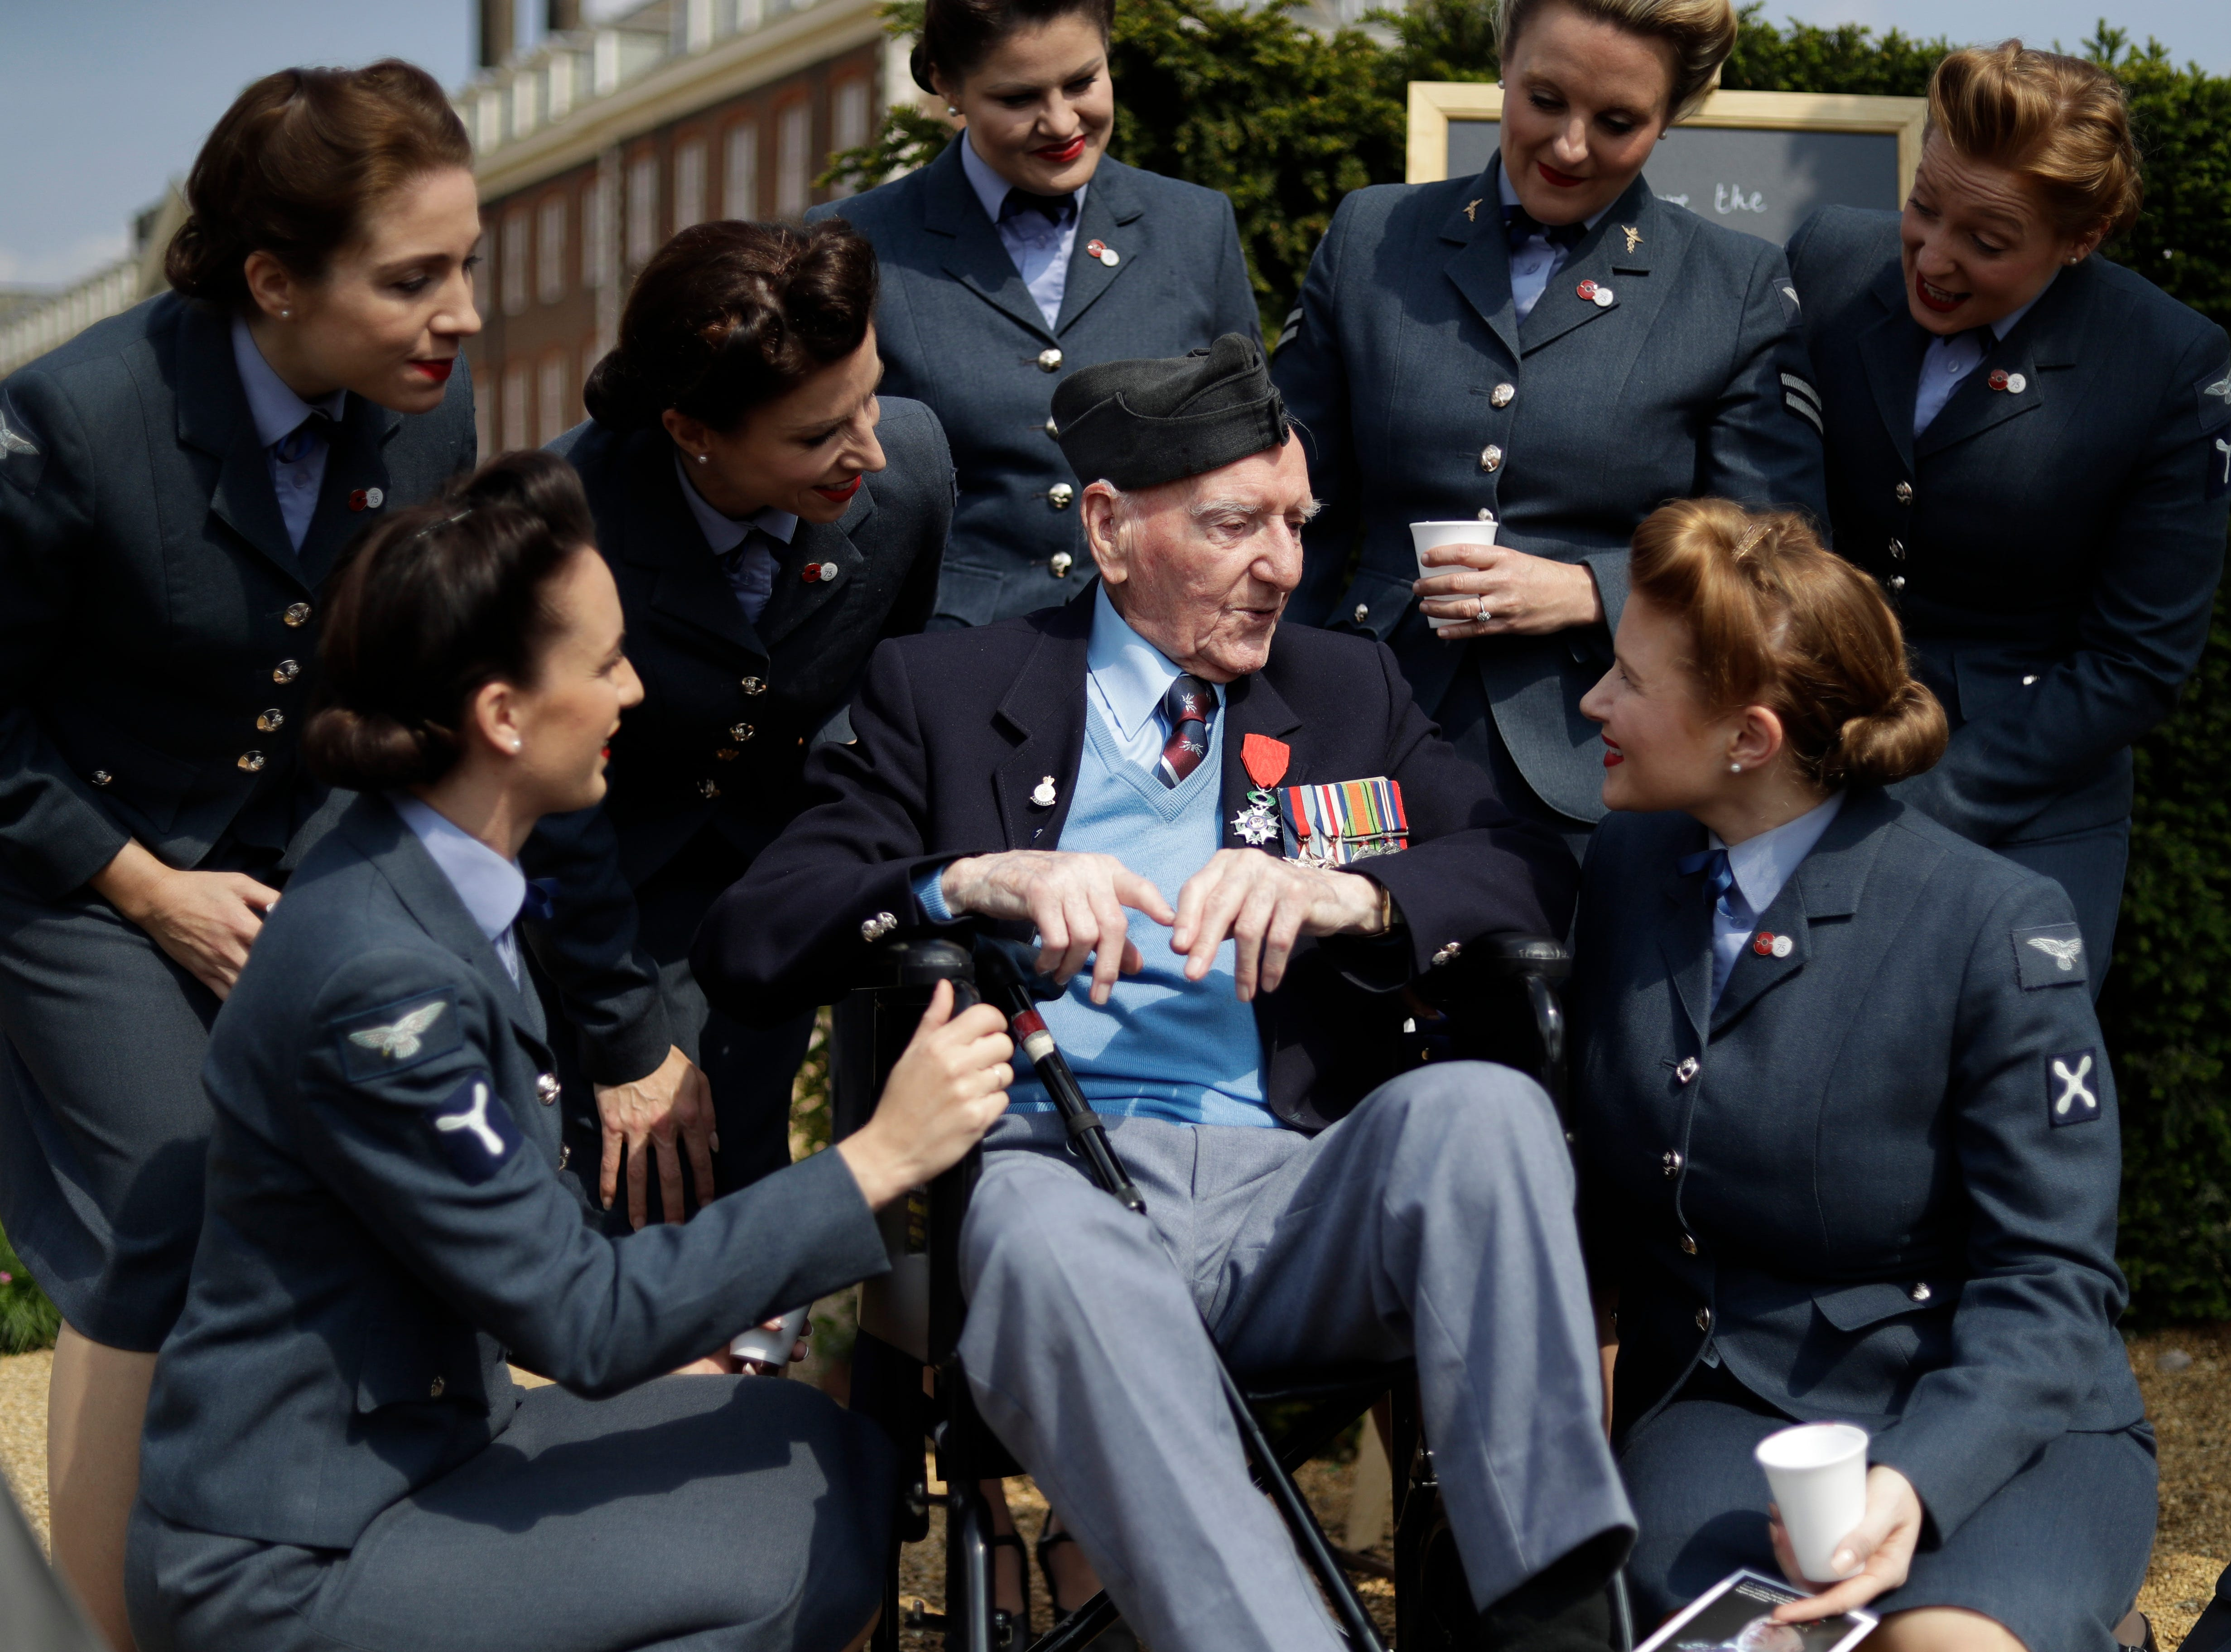 """World War II British D-Day veteran Bernard Morgan, aged 95, who was a sergeant decoder in the Royal Air Force 83 Group Control Centre and landed at Gold beach on the afternoon of June 6, 1944, speaks to the 'D-Day Darlings' singing group after they posed for a group photograph on the """"D-Day 75 Garden,"""" for the 75th anniversary of D-Day at the RHS (Royal Horticultural Society) Chelsea Flower Show, in London, Monday, May 20, 2019. World-renowned and quintessentially British, the annual show is a celebration of horticultural excellence and innovation."""